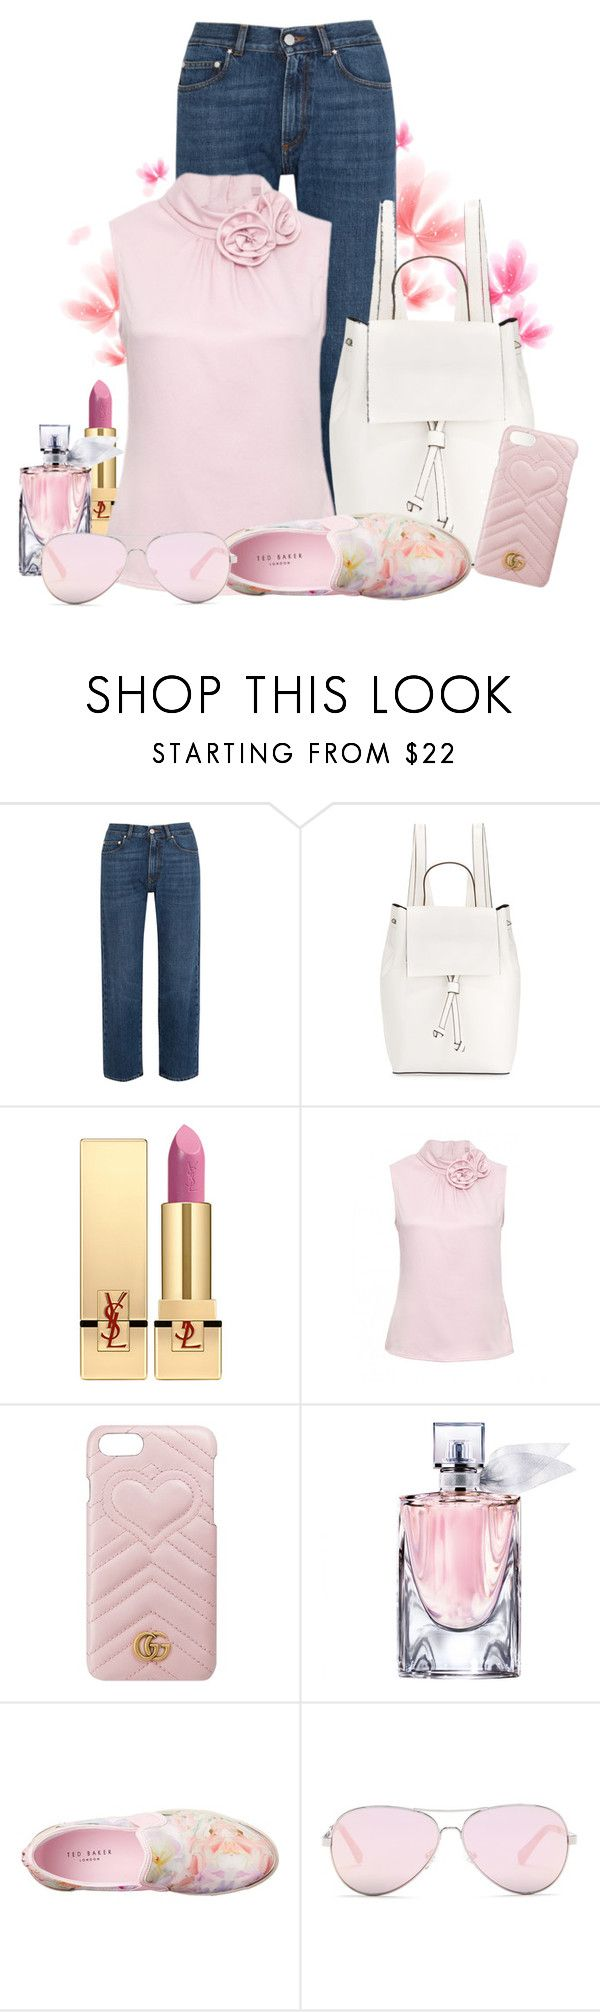 """""""Boyfriend jeans is right!"""" by ela79 ❤ liked on Polyvore featuring AlexaChung, French Connection, Yves Saint Laurent, Gucci, Lancôme, Ted Baker and Kenneth Cole Reaction"""